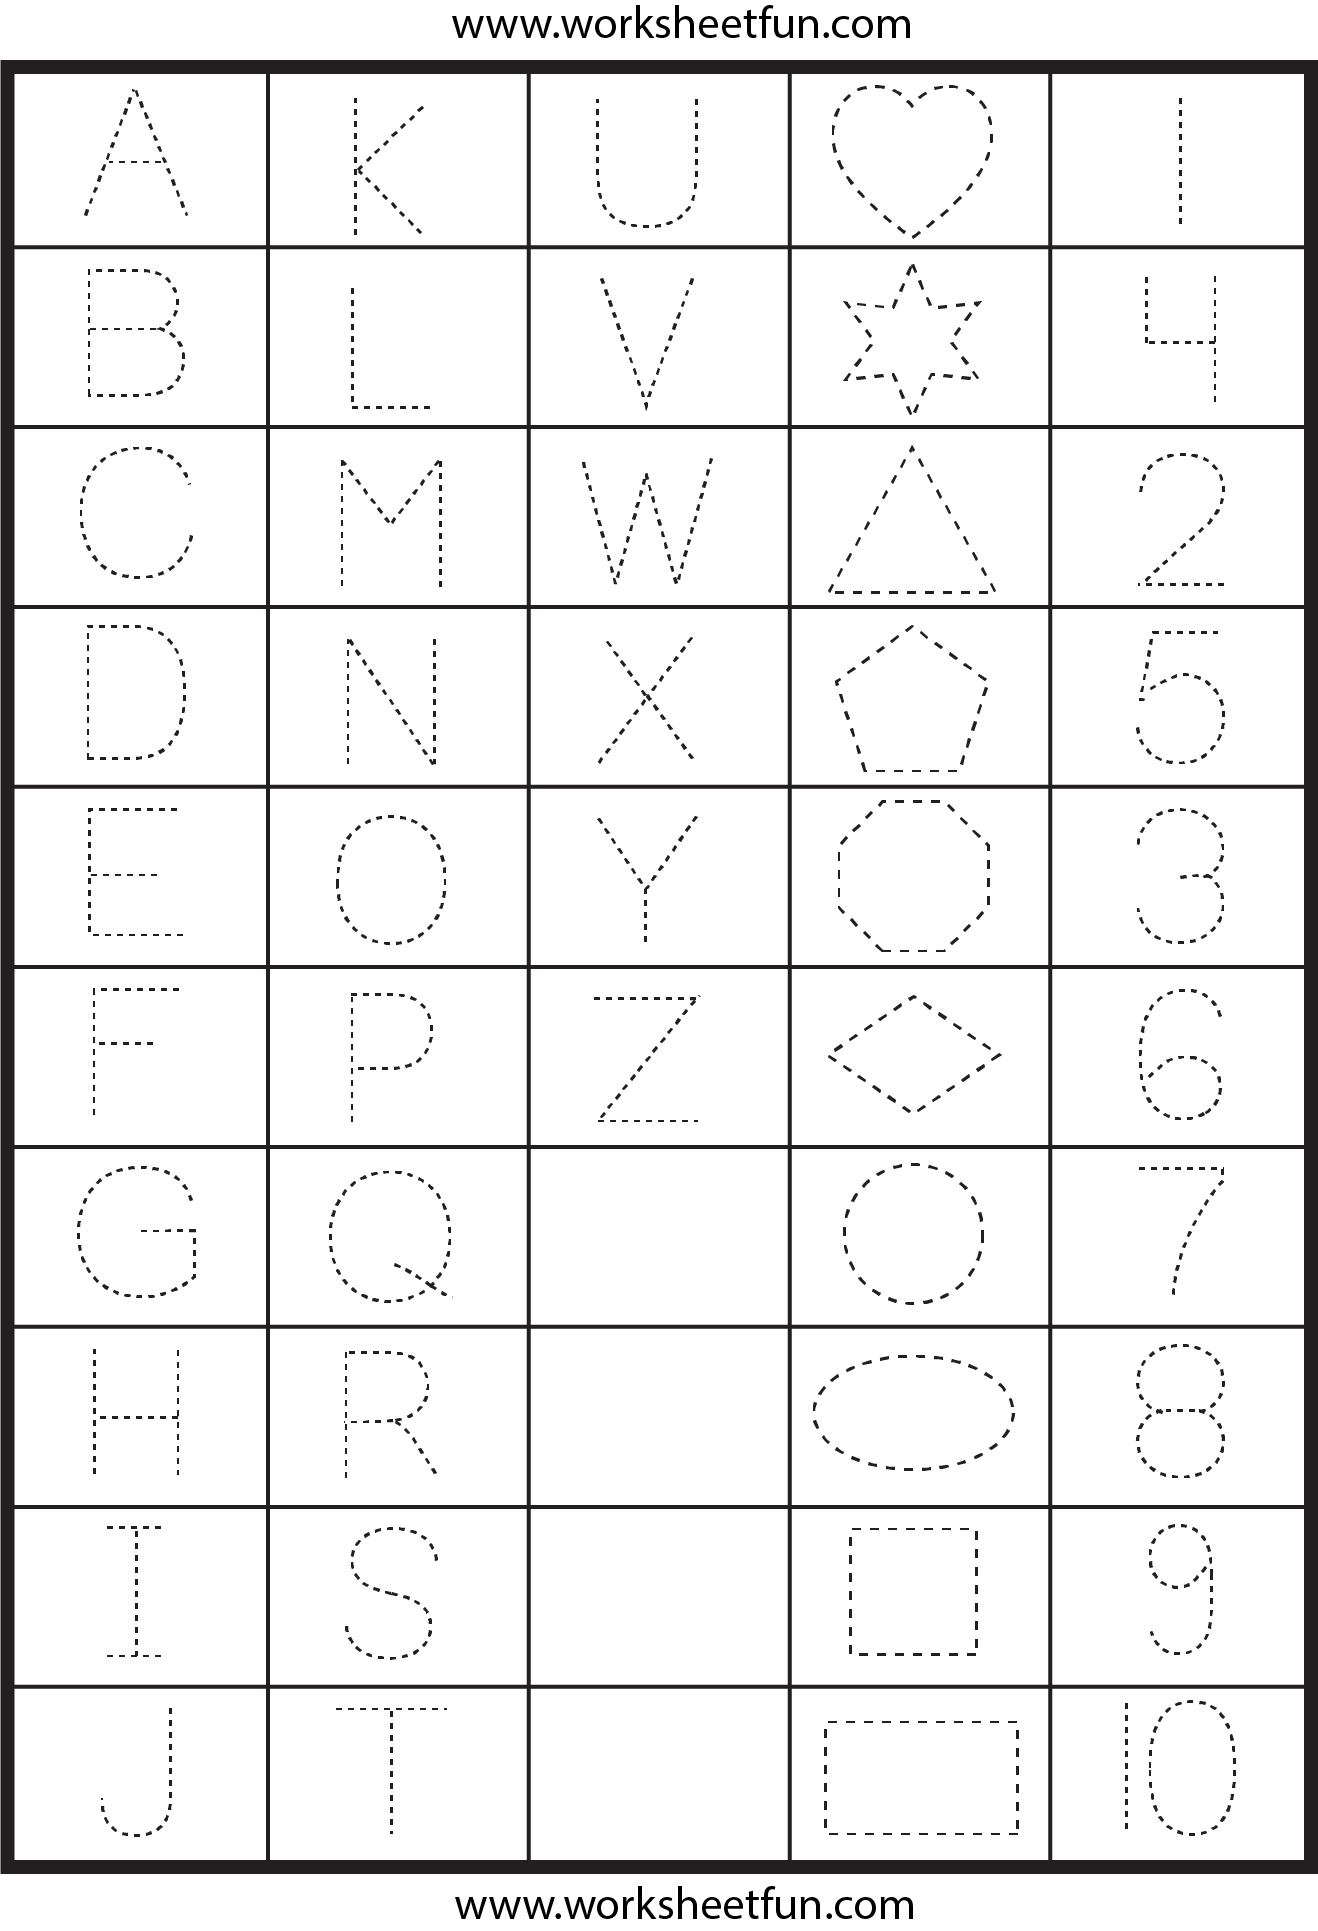 worksheet Trace The Letter S Worksheets letters numbers and shapes tracing worksheet preschool worksheets worksheet